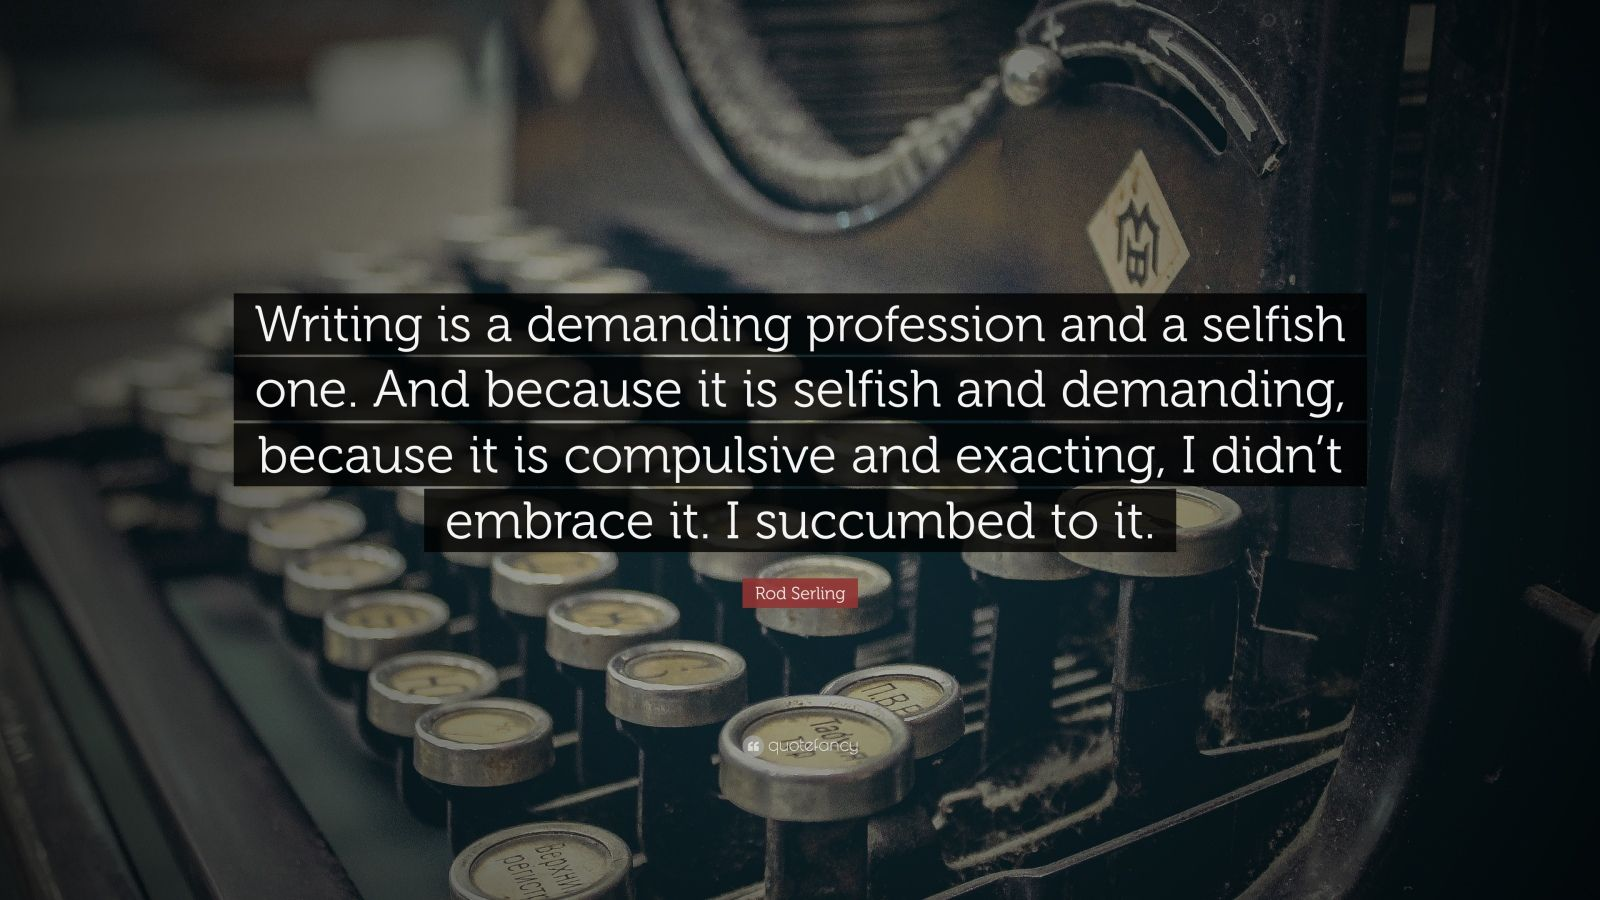 """Rod Serling Quote: """"Writing is a demanding profession and a selfish one. And because it is selfish and demanding, because it is compulsive and exacting, I didn't embrace it. I succumbed to it."""""""